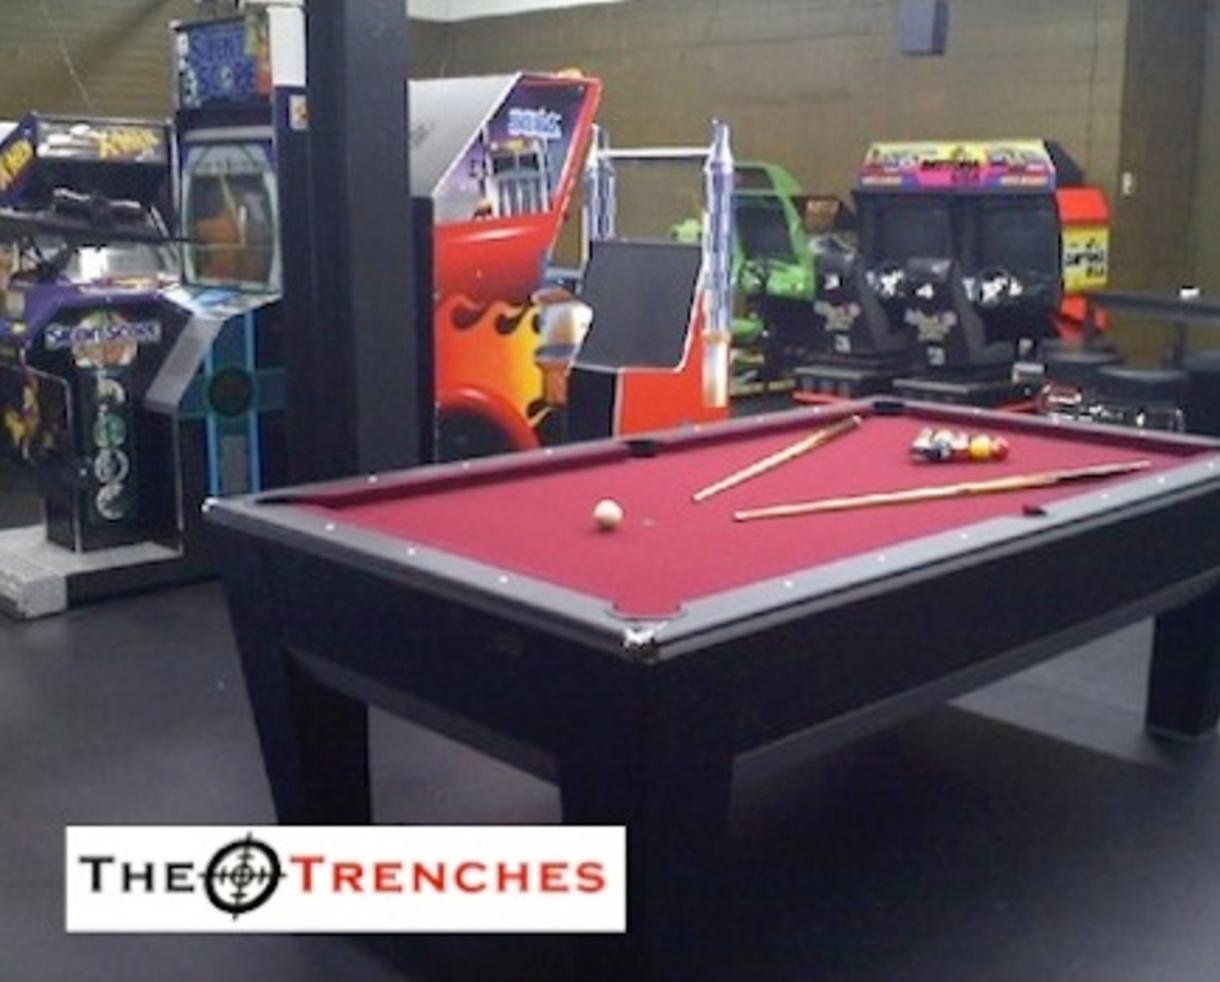 $149 for Private Birthday Party, Unlimited Games & Pizza for 15 Guest (61% off) OR $10 for Admission with Unlimited Games at The TRENCHES Multimedia Game Lounge and Arcade in Rockville (50% Off)